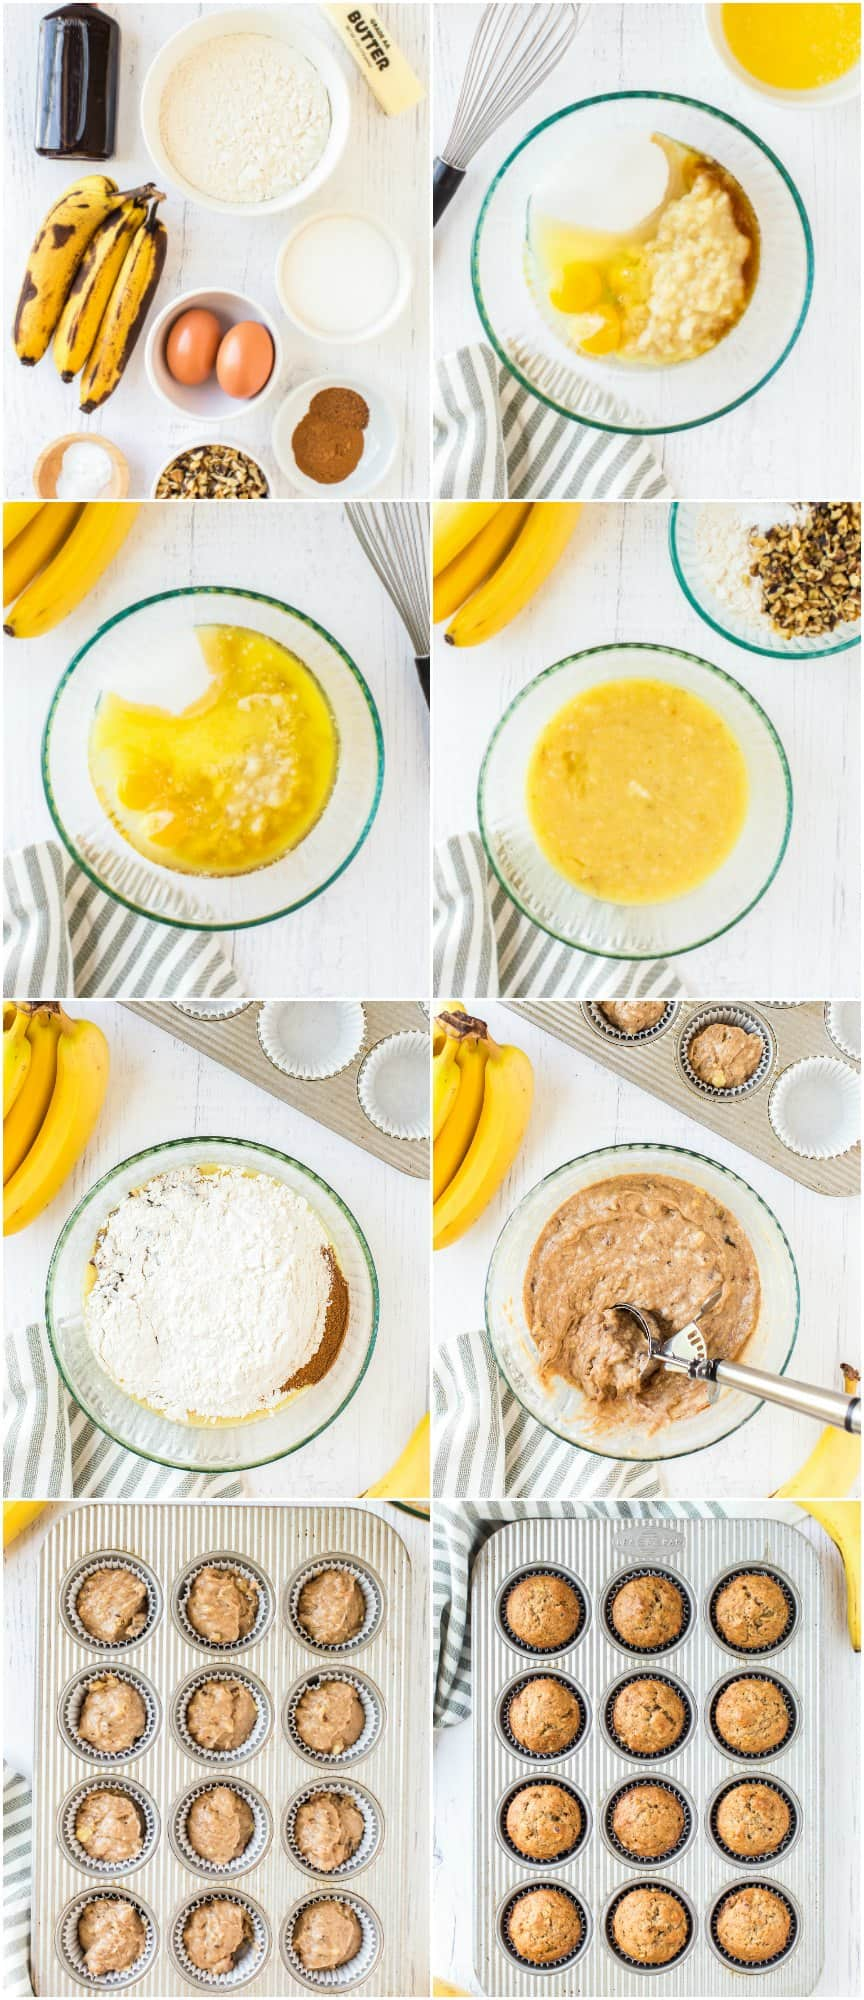 step by step photos of how to make banana muffins